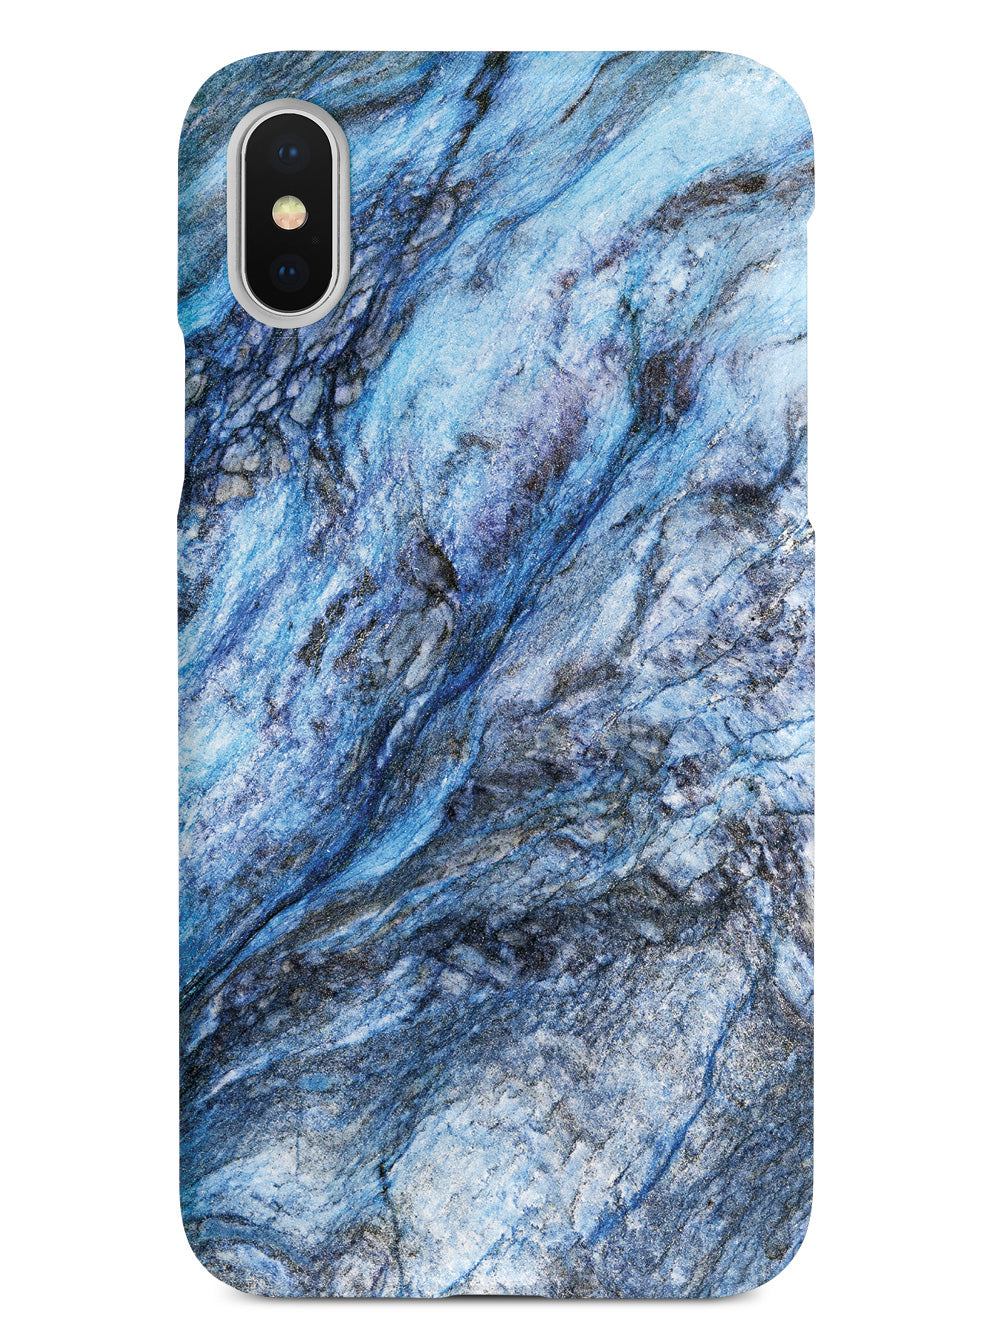 Textured Rough Blue Marble Case